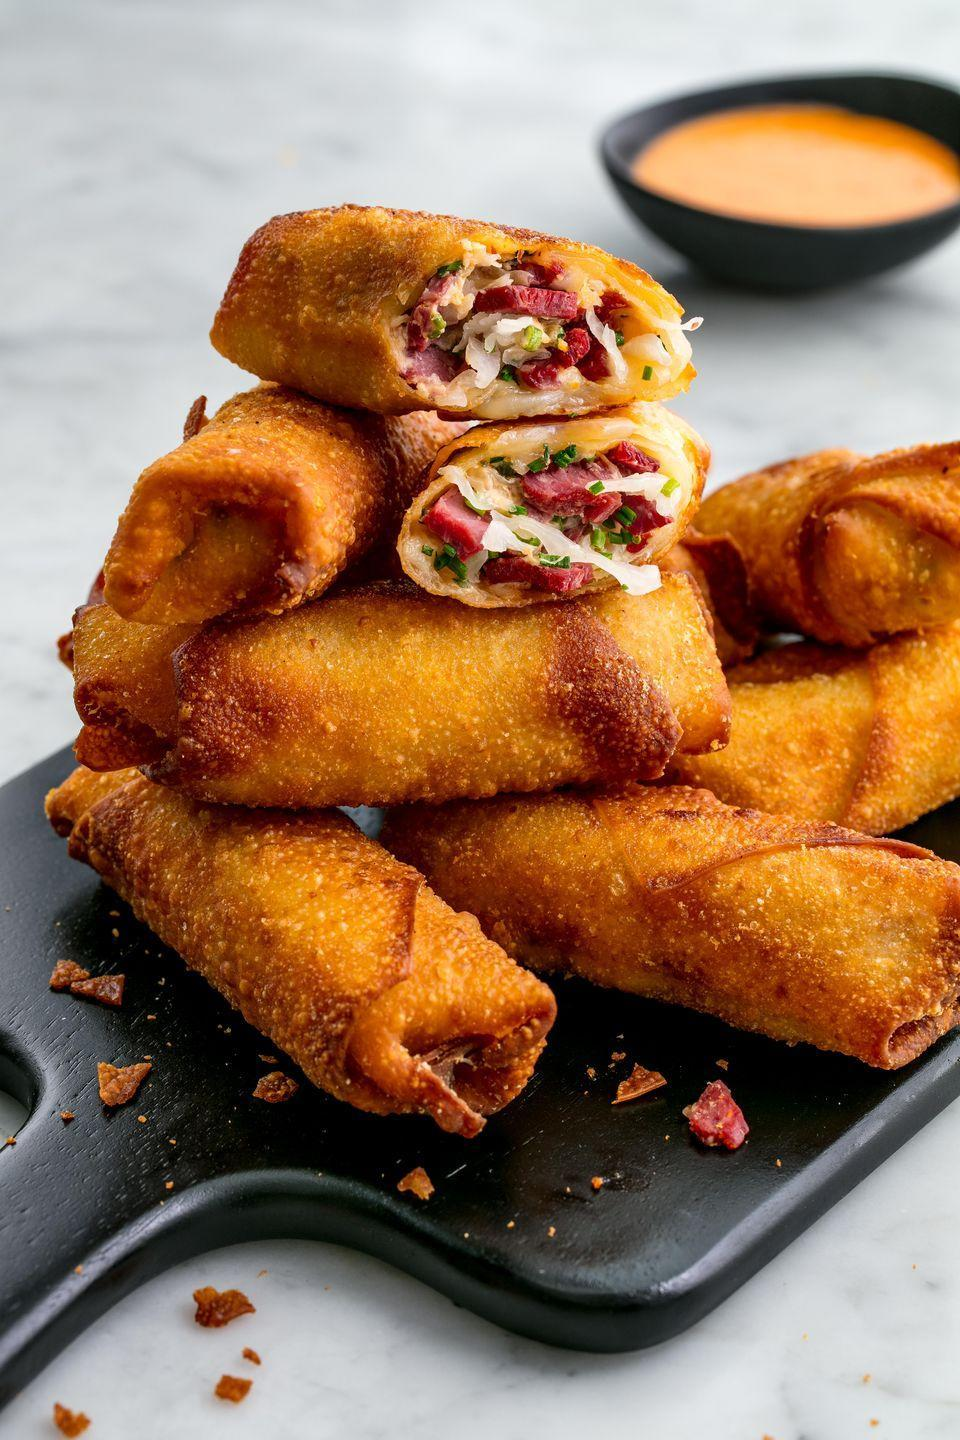 "<p>You've never had an egg roll like this before.</p><p>Get the recipe from <a href=""https://www.delish.com/cooking/recipe-ideas/a22988448/reuben-egg-rolls-recipe/"" rel=""nofollow noopener"" target=""_blank"" data-ylk=""slk:Delish"" class=""link rapid-noclick-resp"">Delish</a>.</p>"